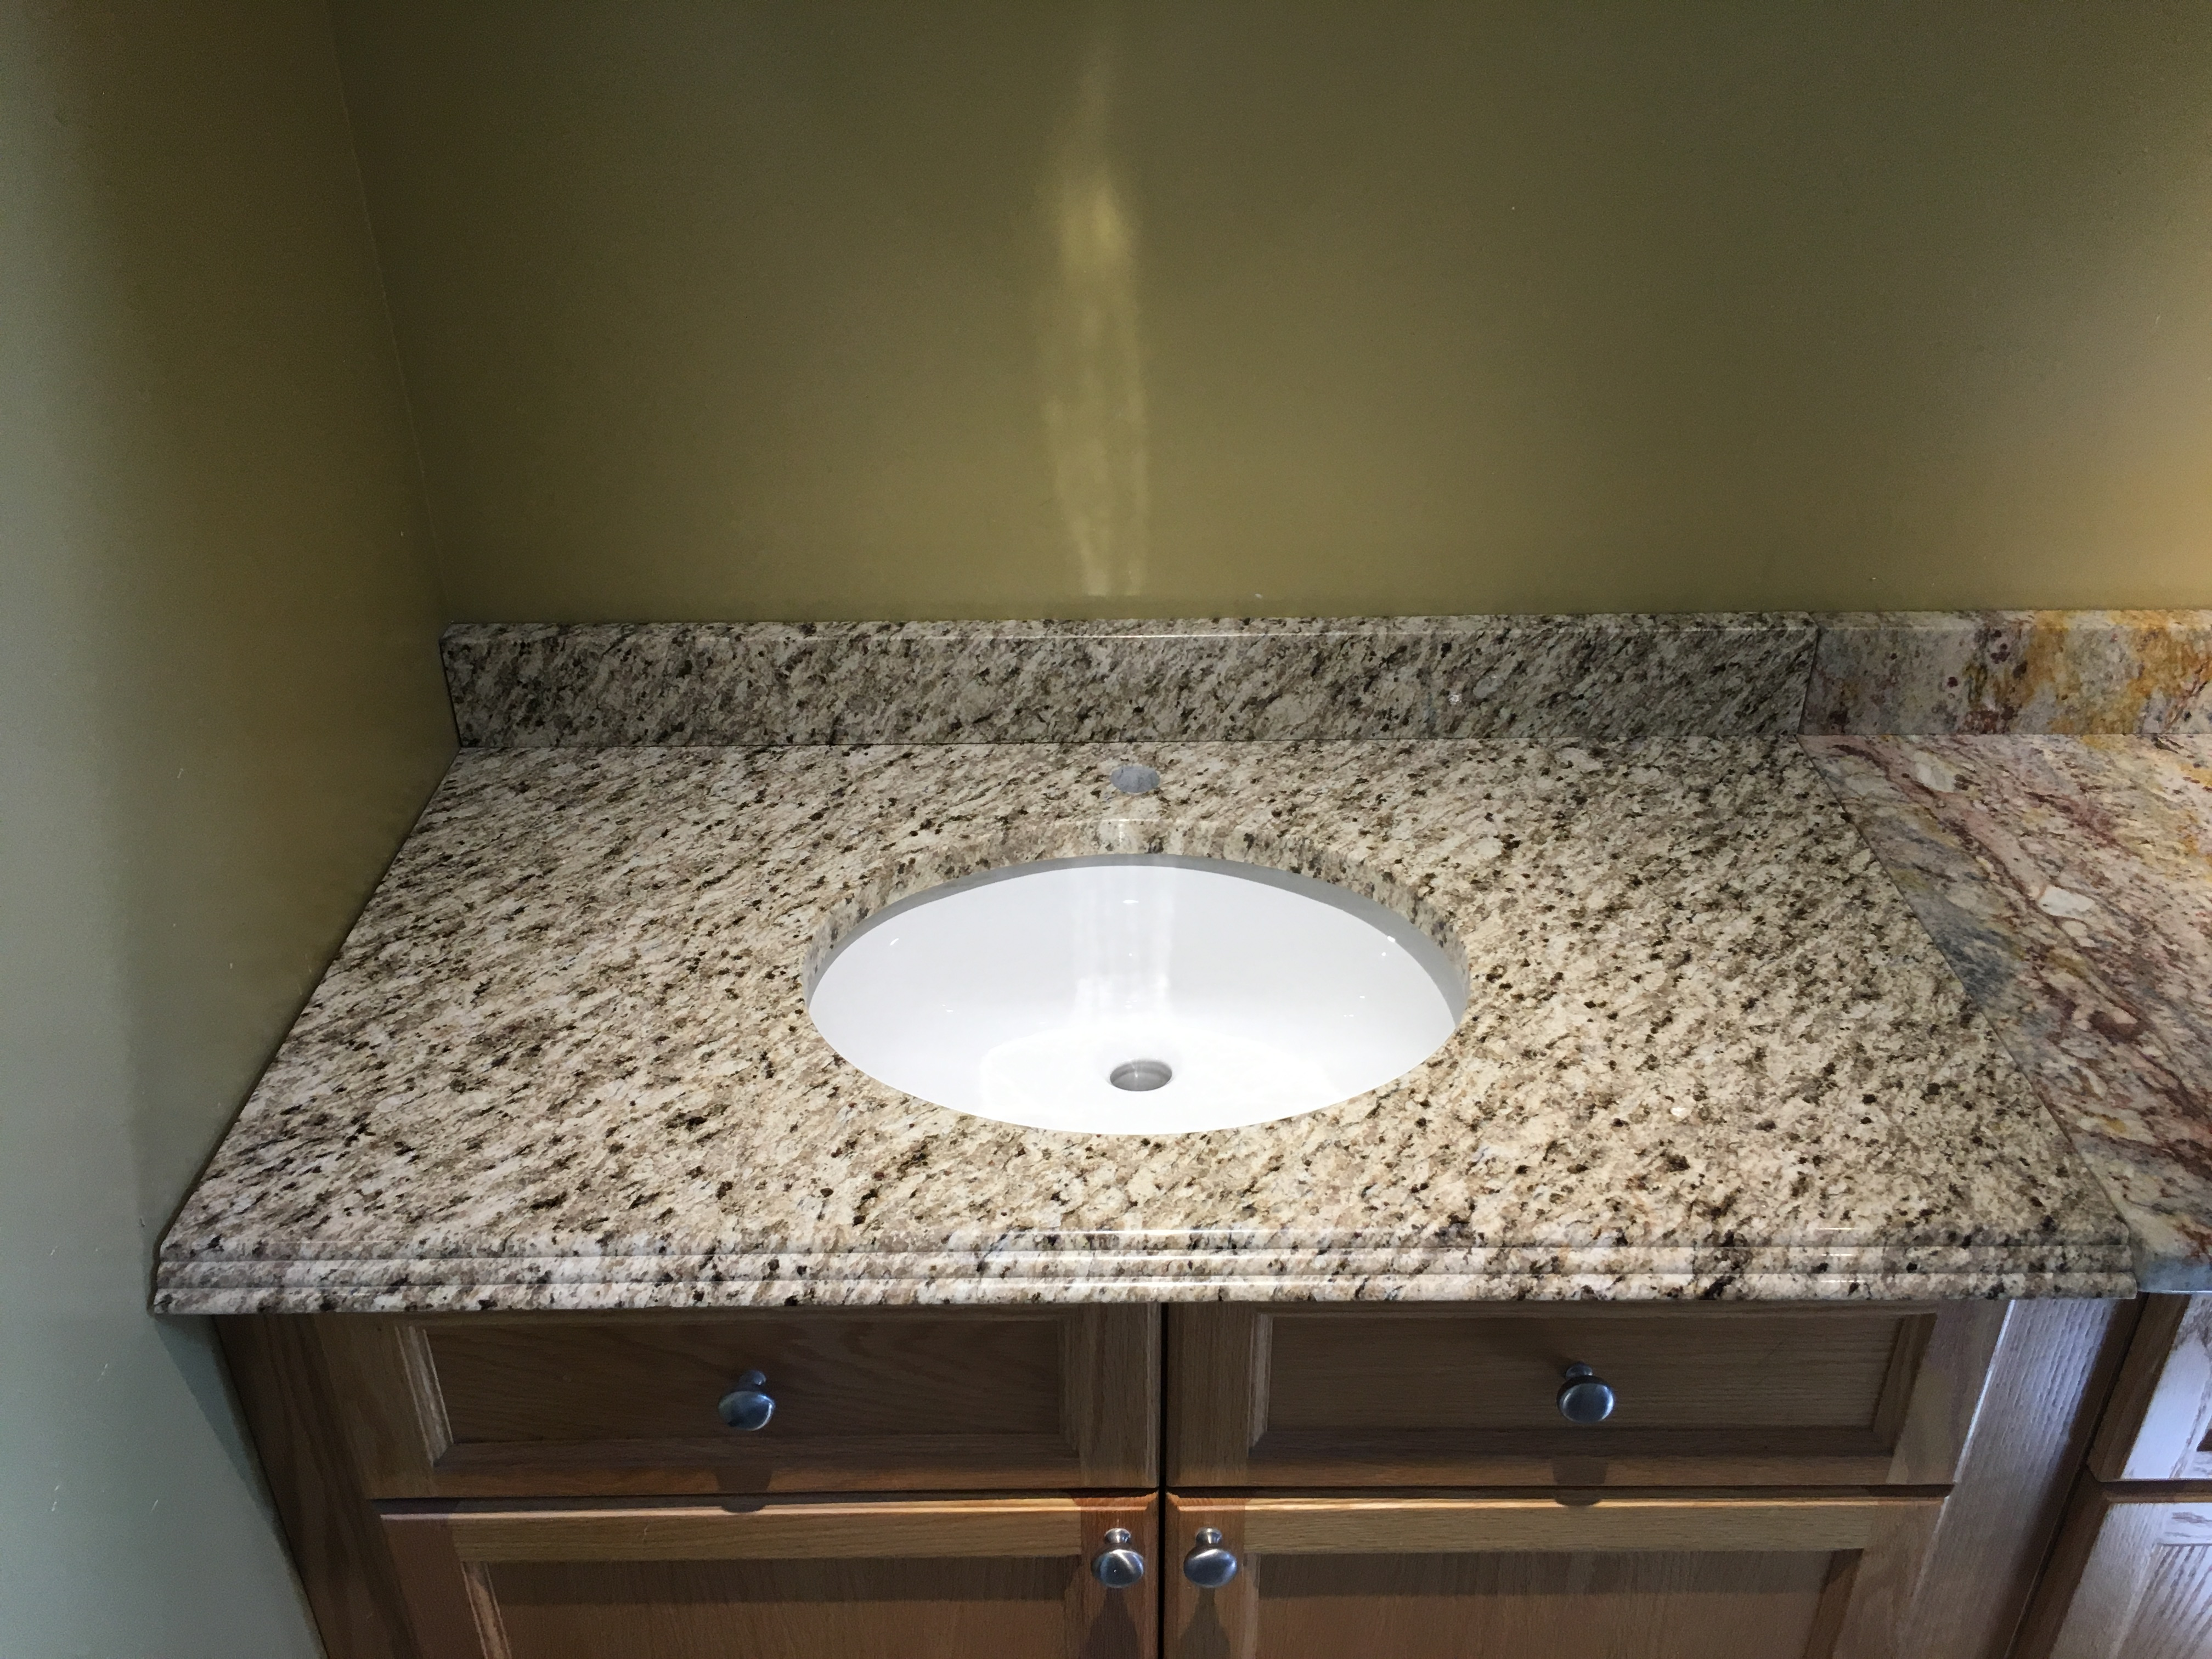 Bathroom Sinks Ottawa Granite Pro Granite Kitchen Countertops Ottawa Granite Quartz Marble Stone